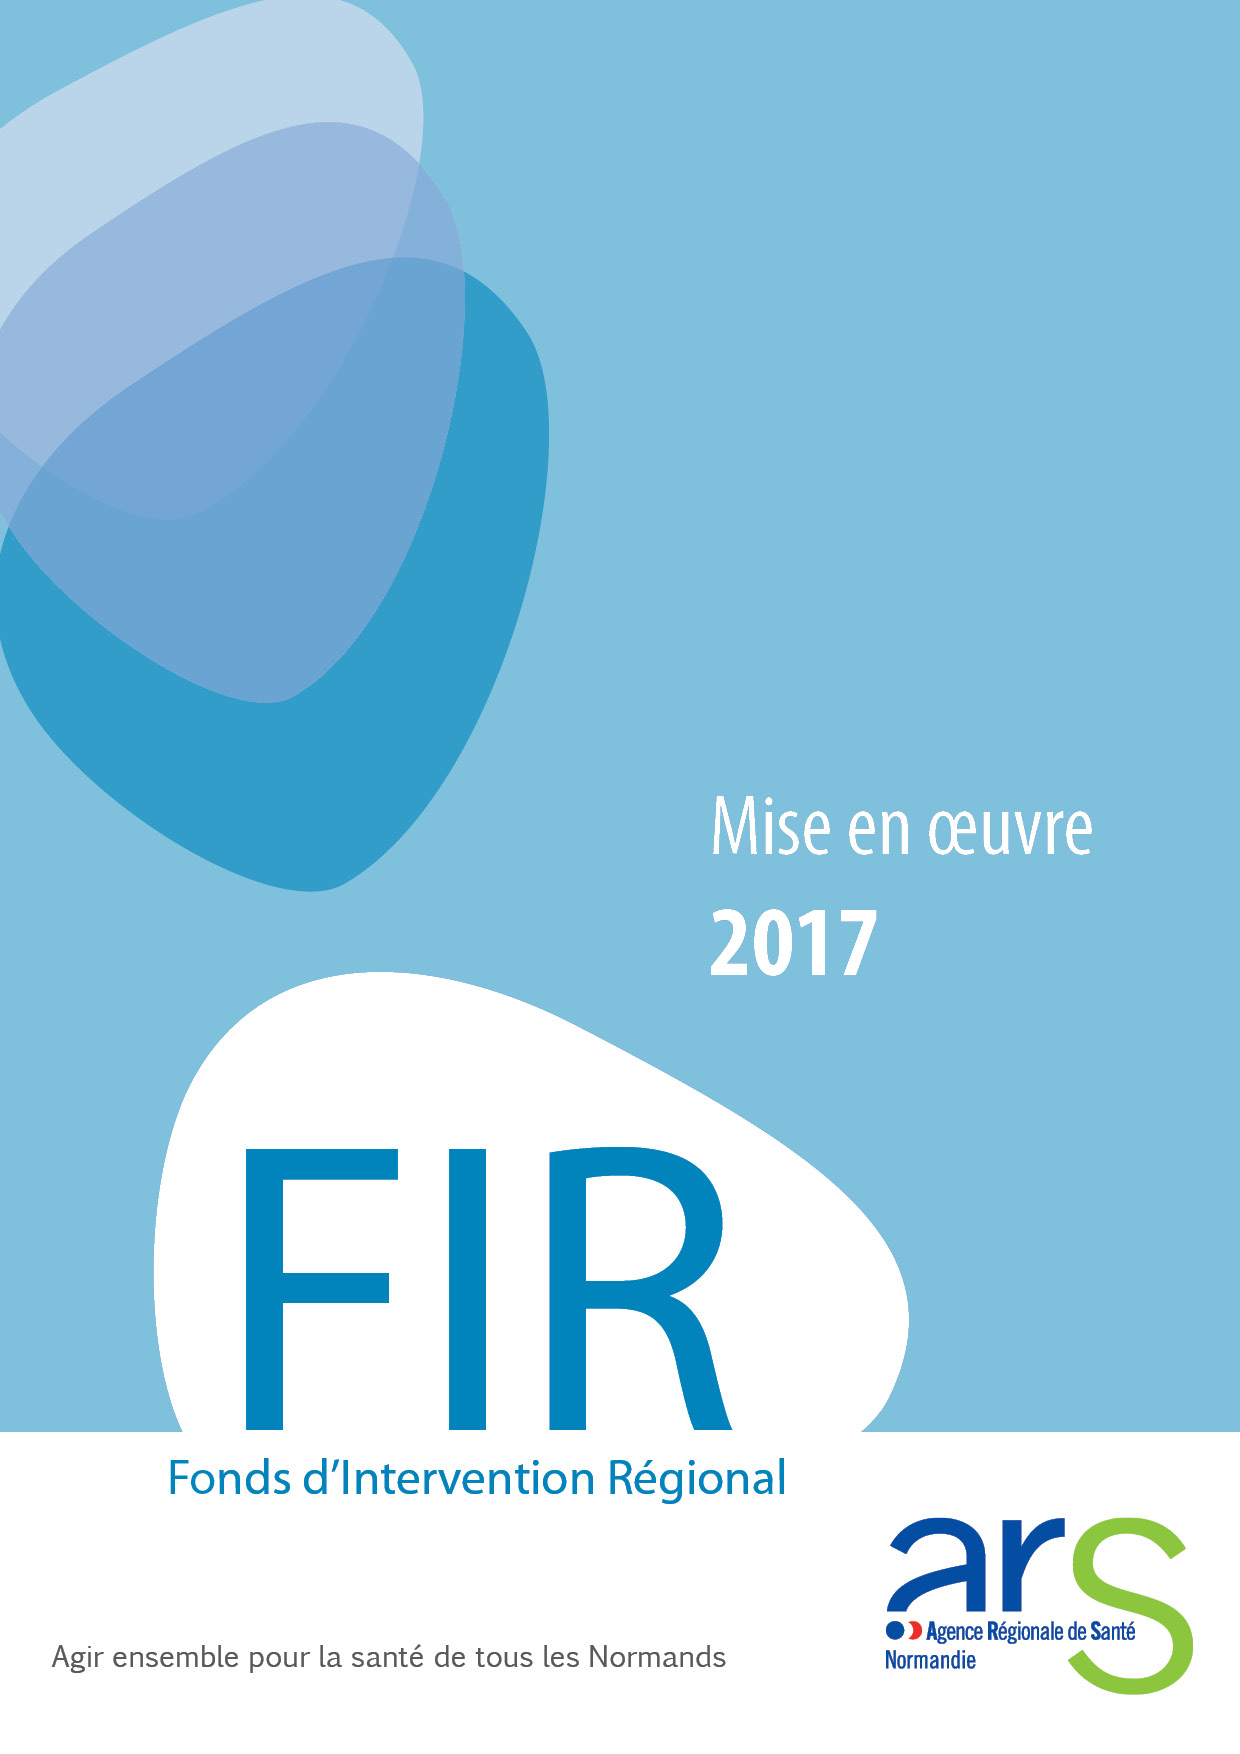 Couverture de la brochure FIR 2017